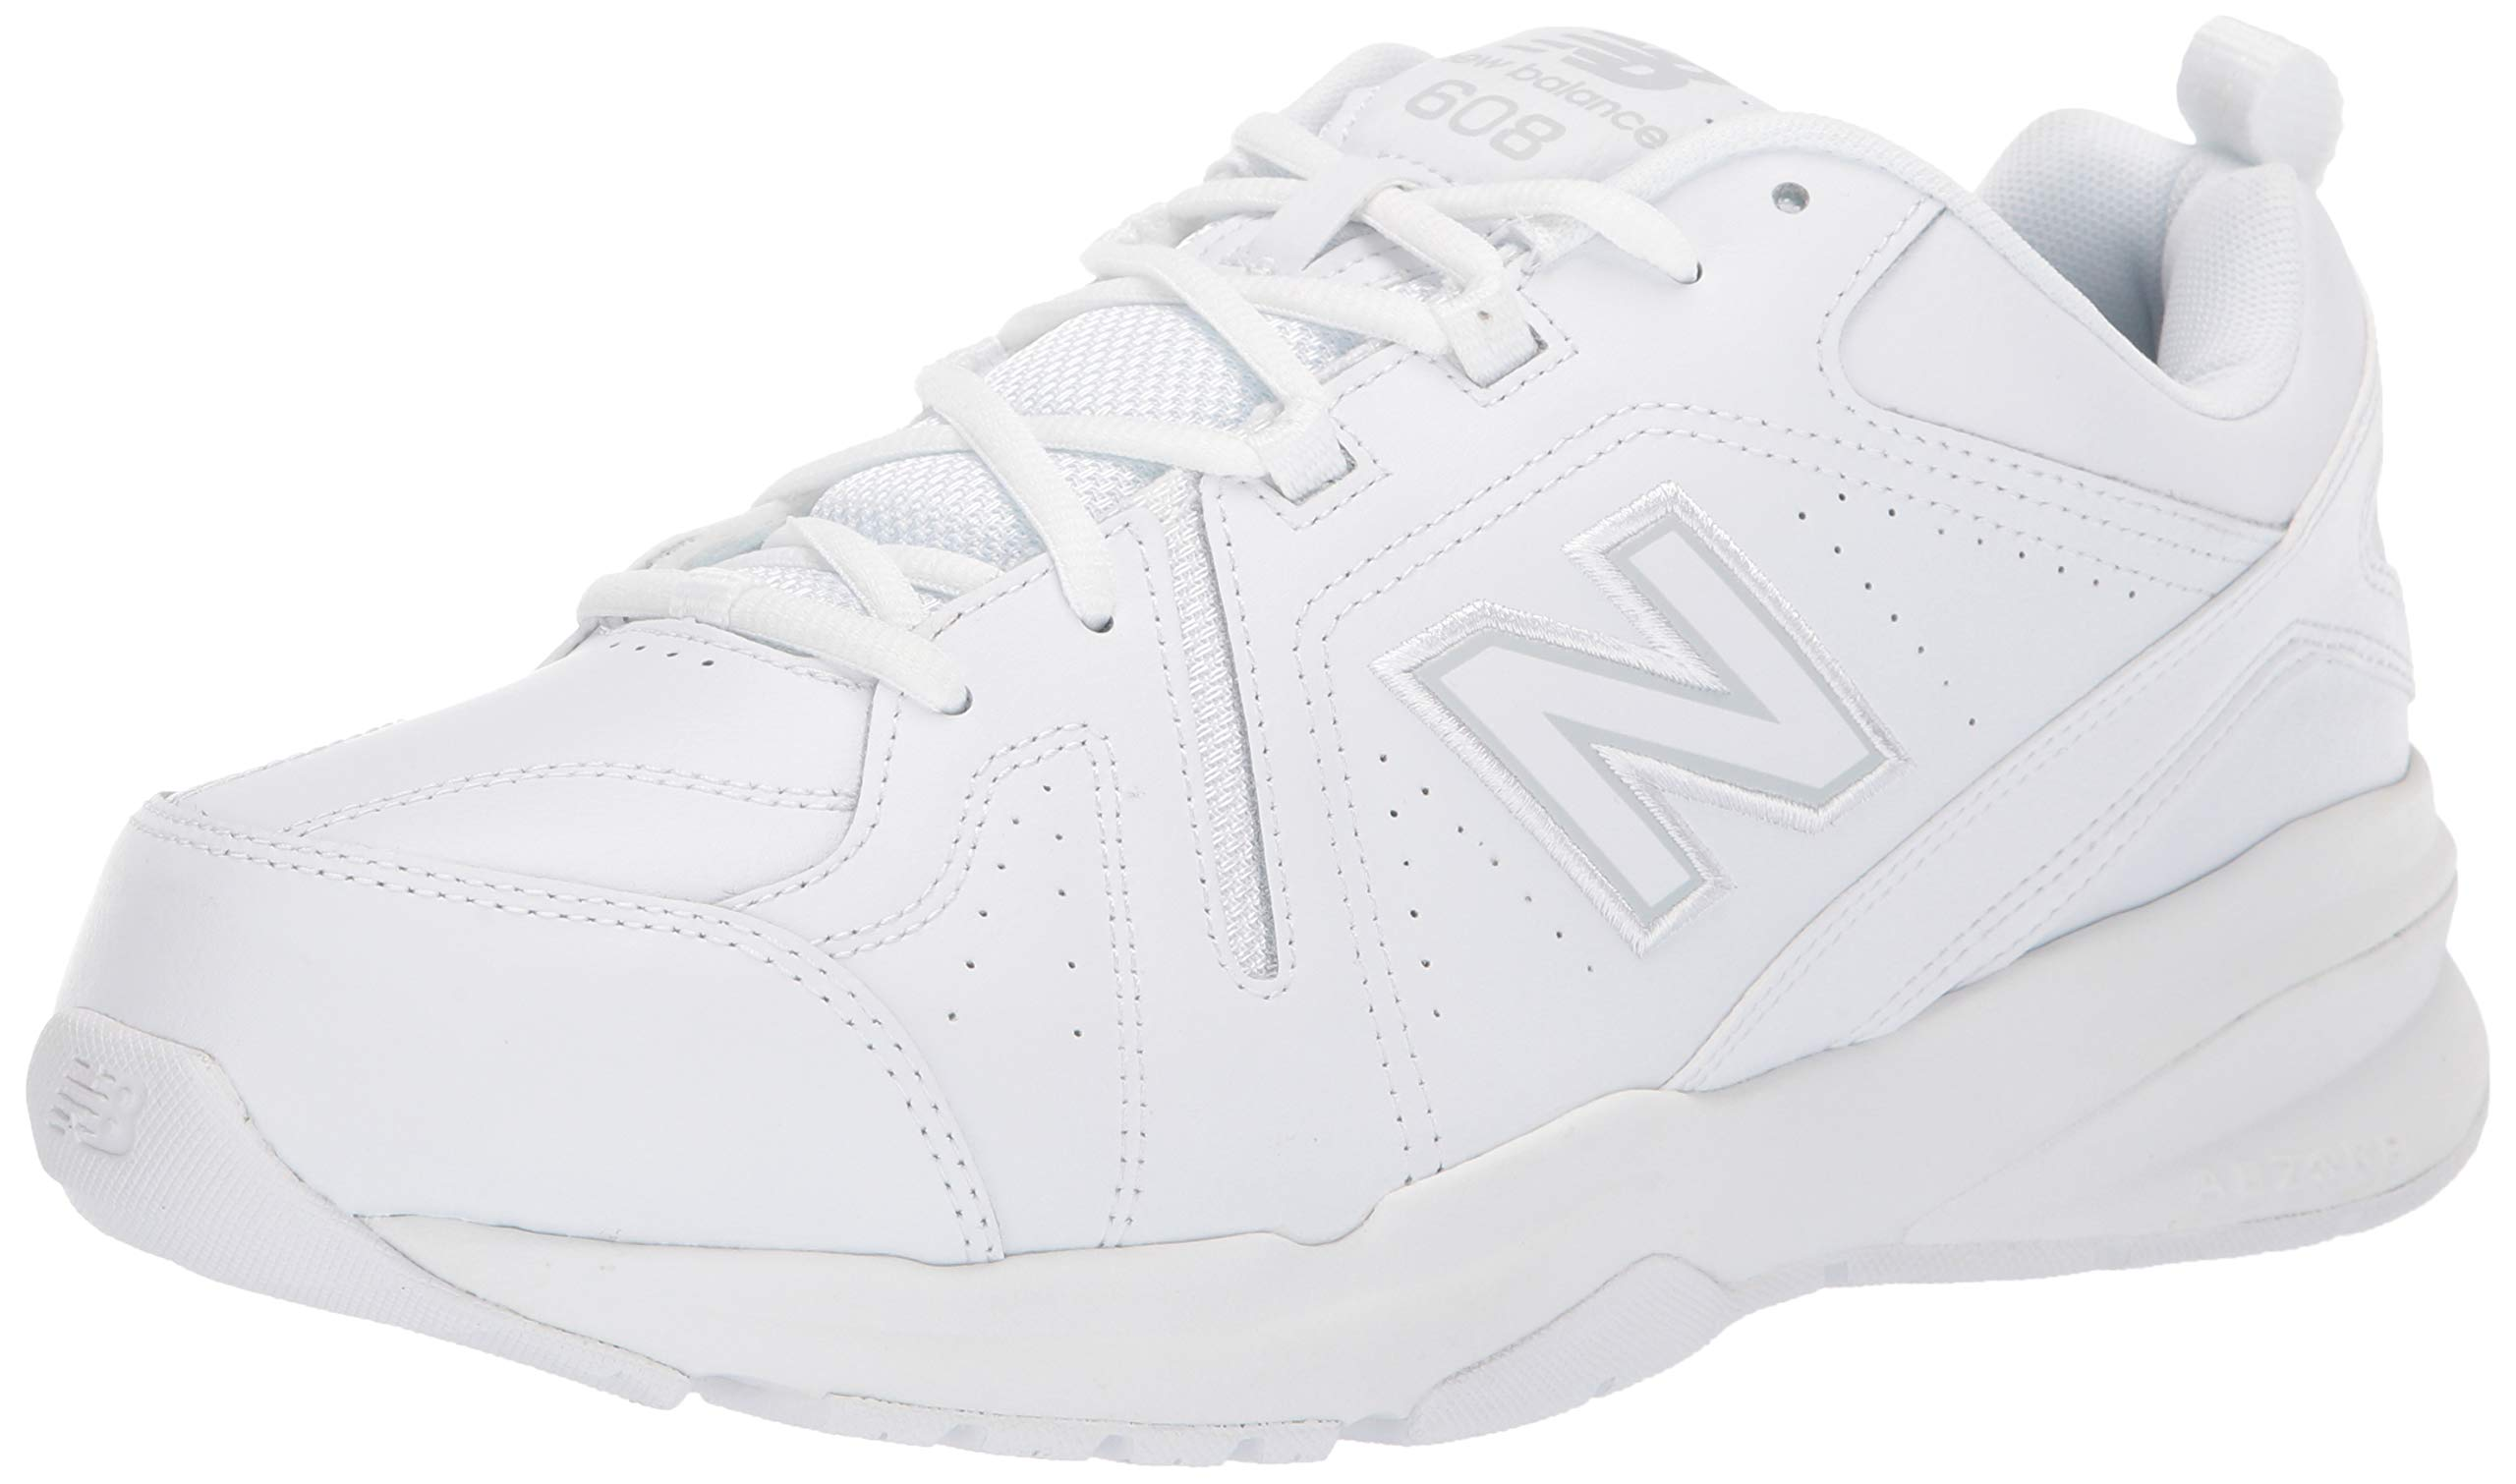 New Balance Men's 608v5 Casual Comfort Cross Trainer, White, 9 4E US by New Balance